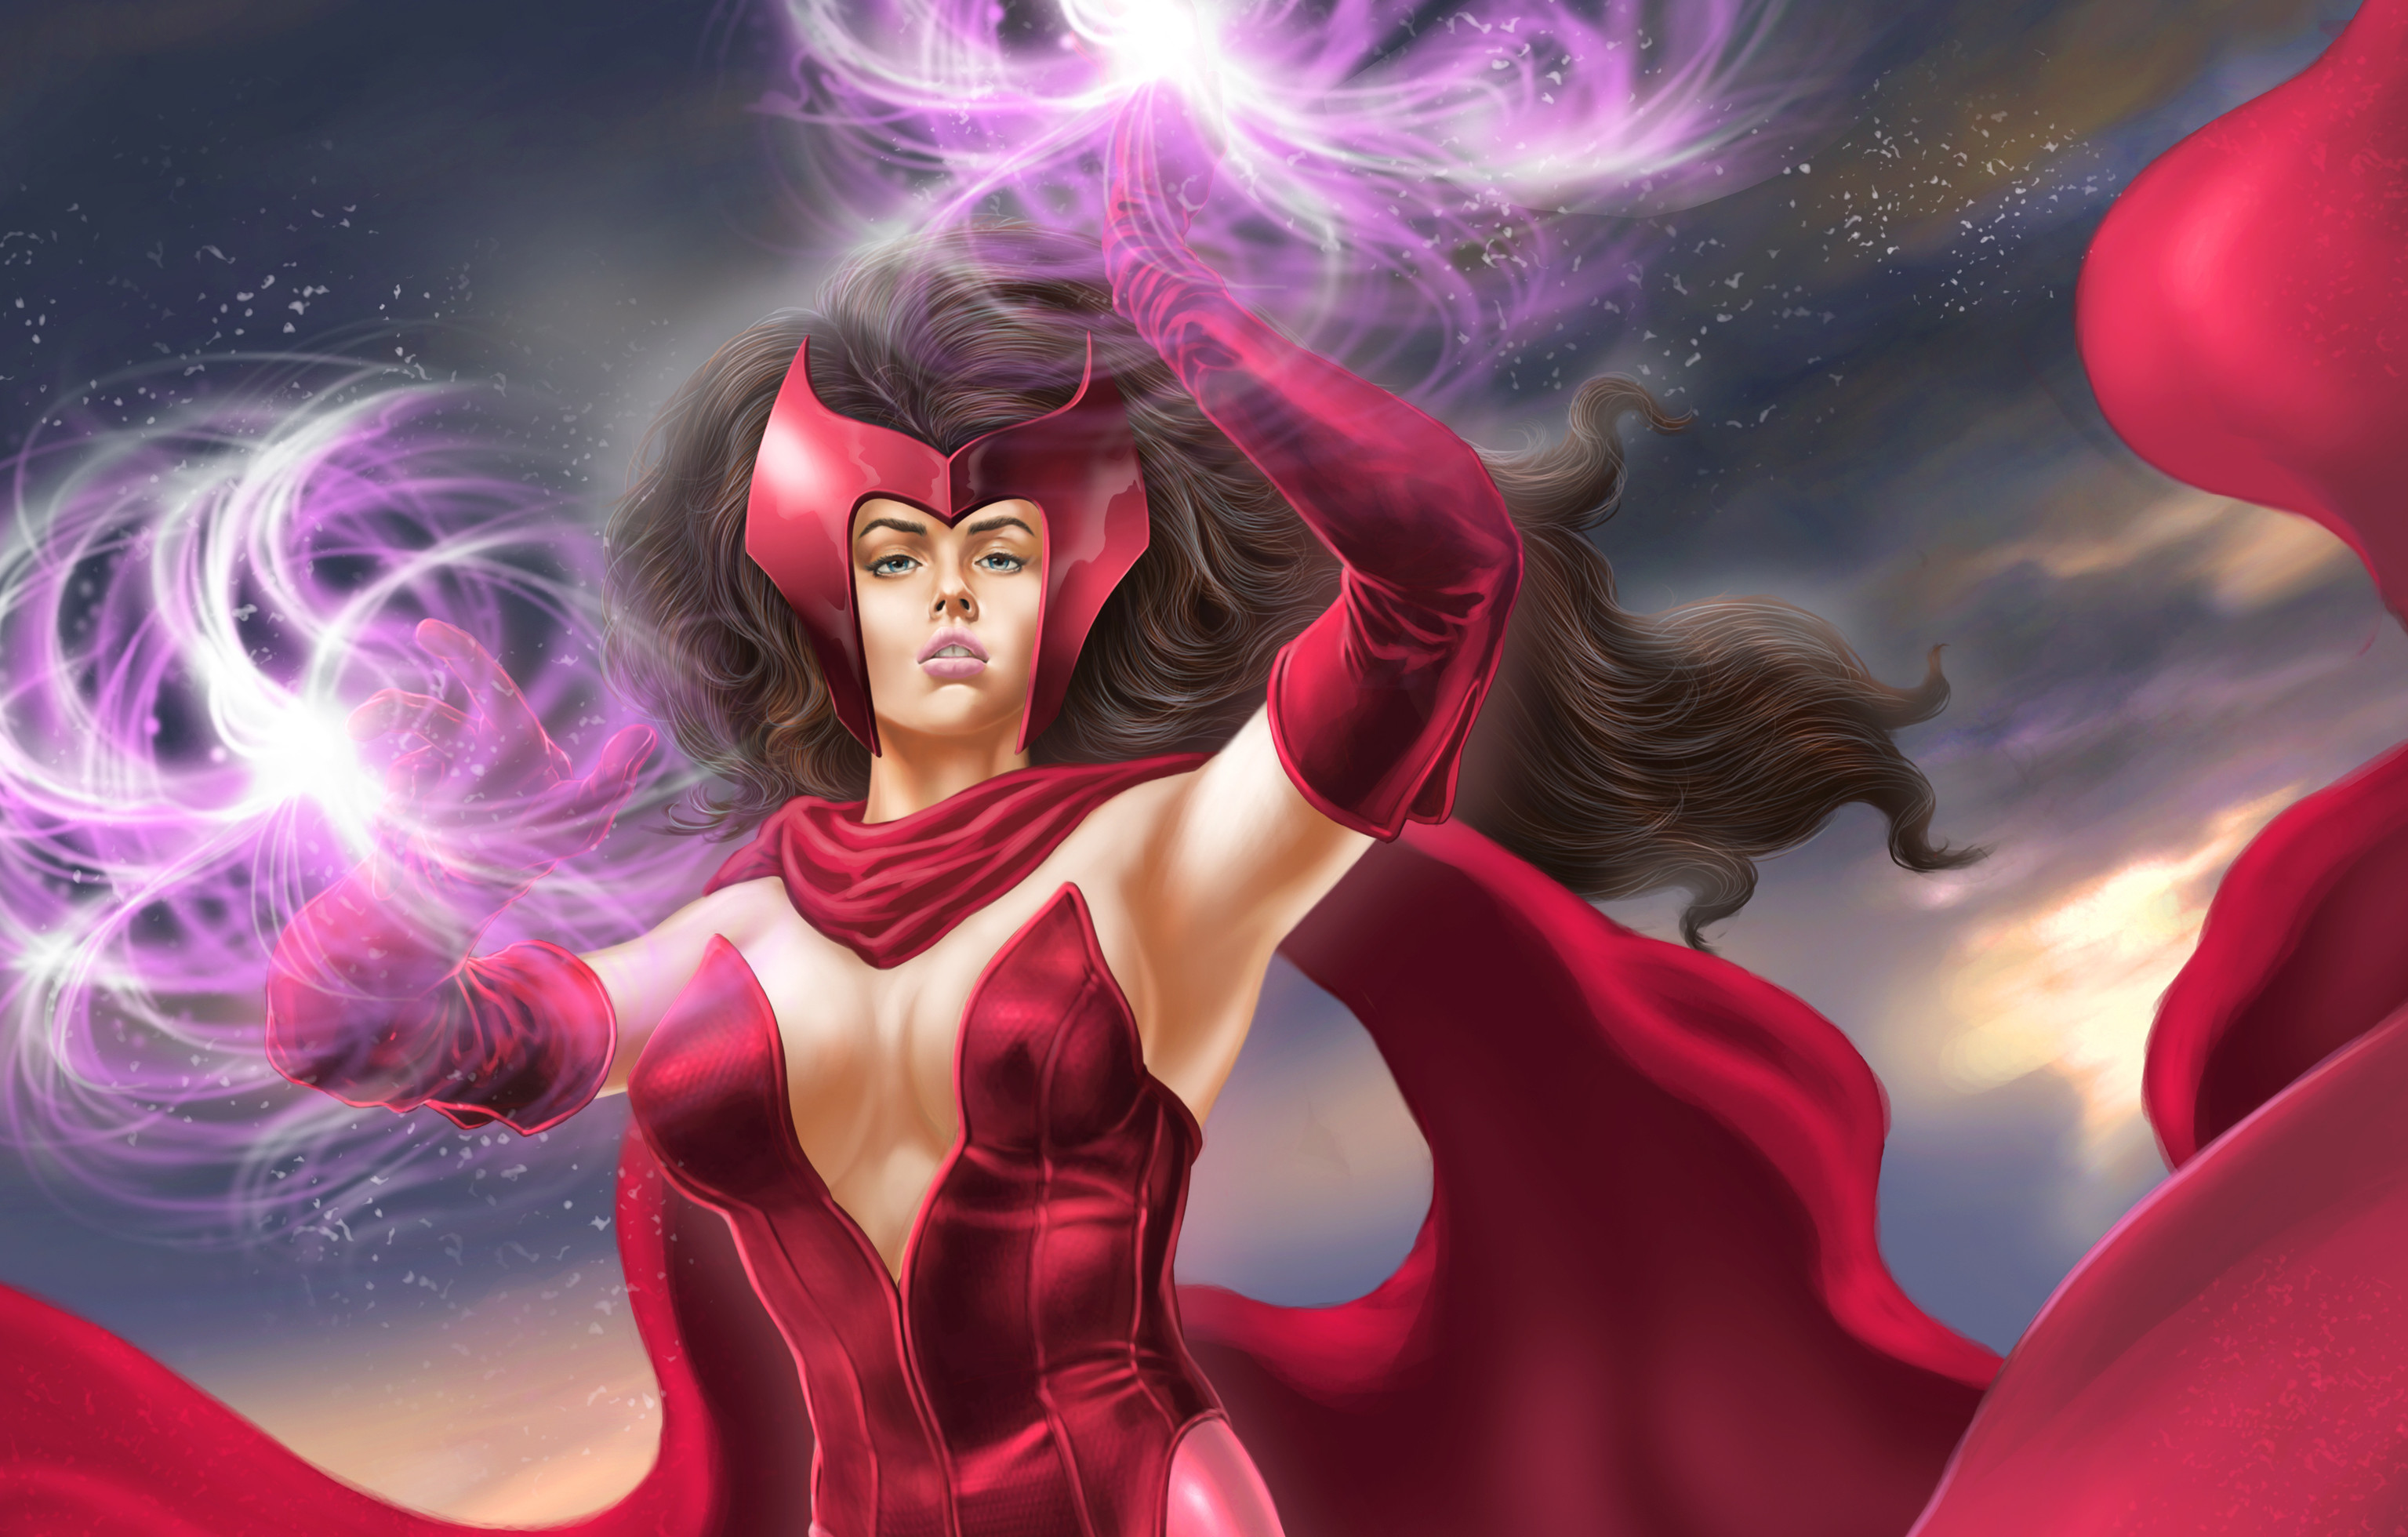 Photo Heroes comics Warriors Scarlet Witch Girls Fantasy 3071×1960